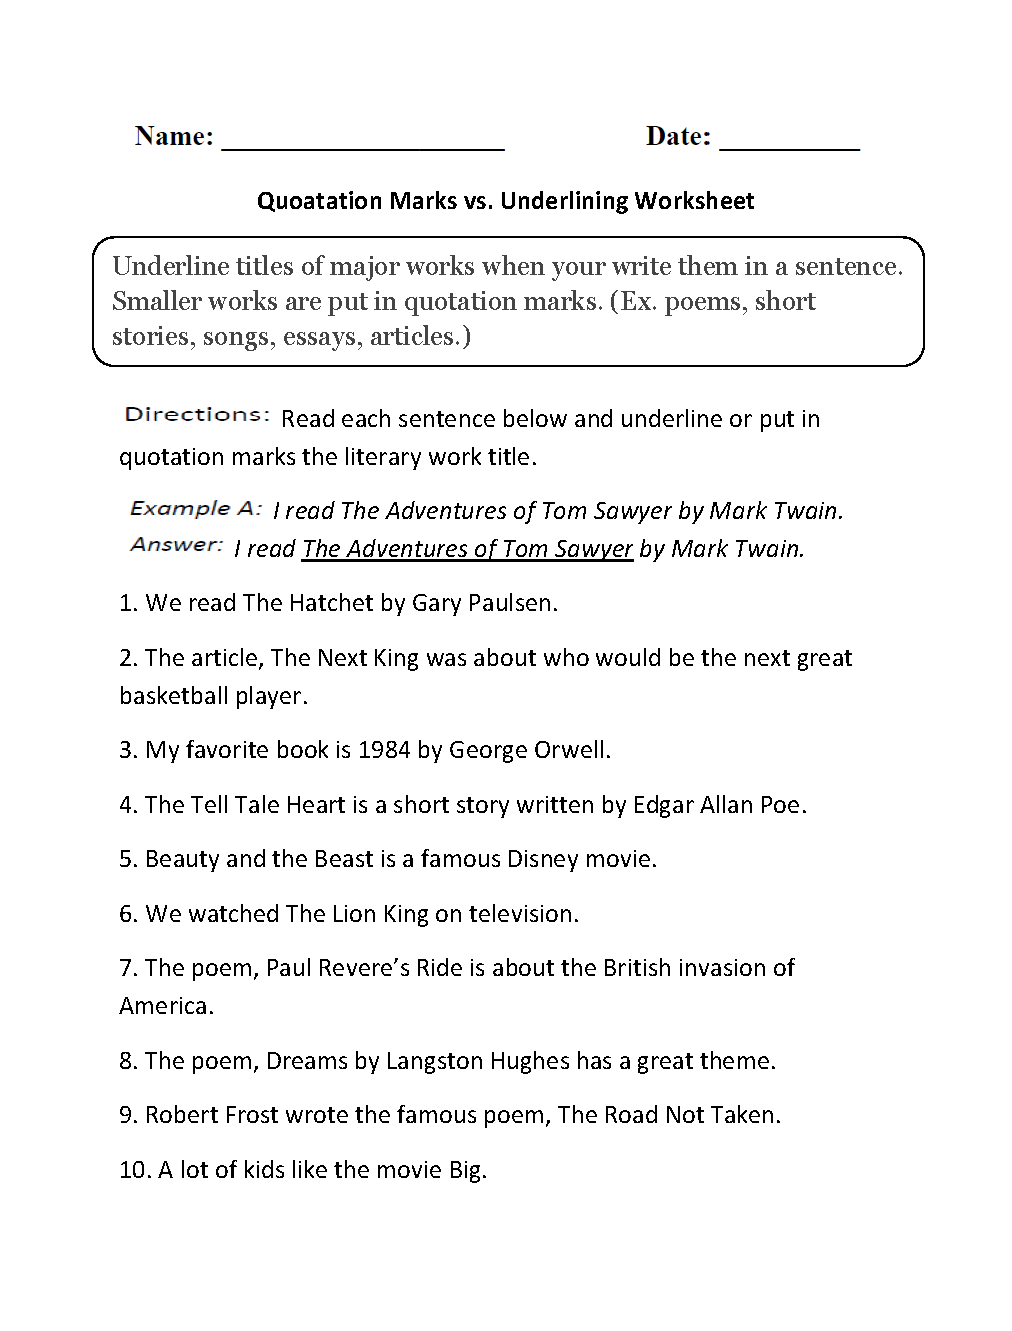 worksheet Citing Evidence Worksheet quotation marks vs underlining worksheets grammar pinterest worksheets